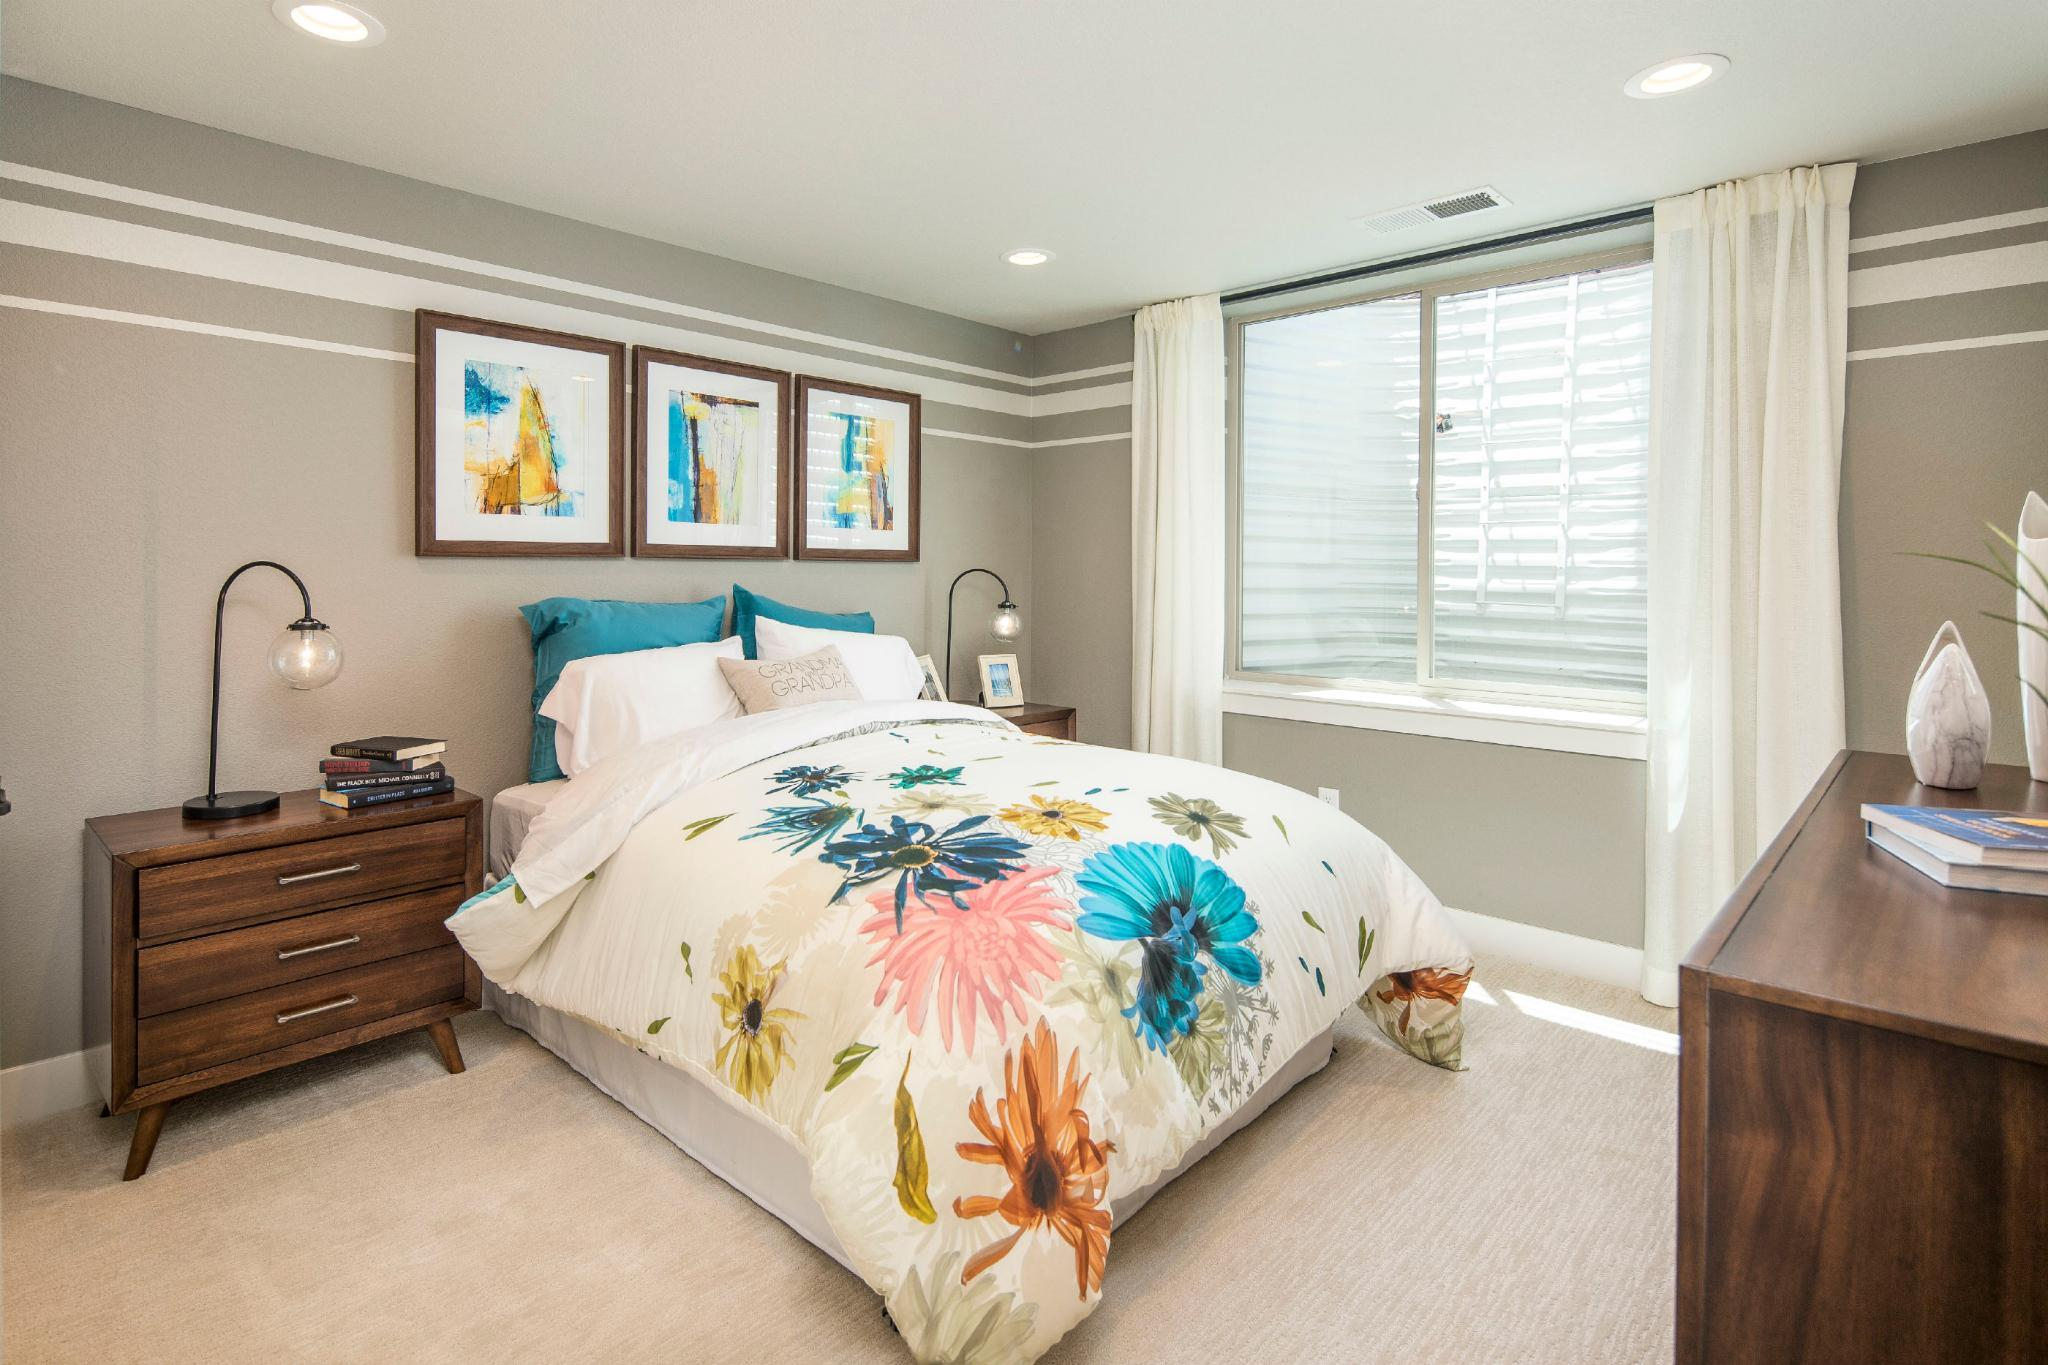 Bedroom featured in the Plan C502 By American Legend Homes in Greeley, CO